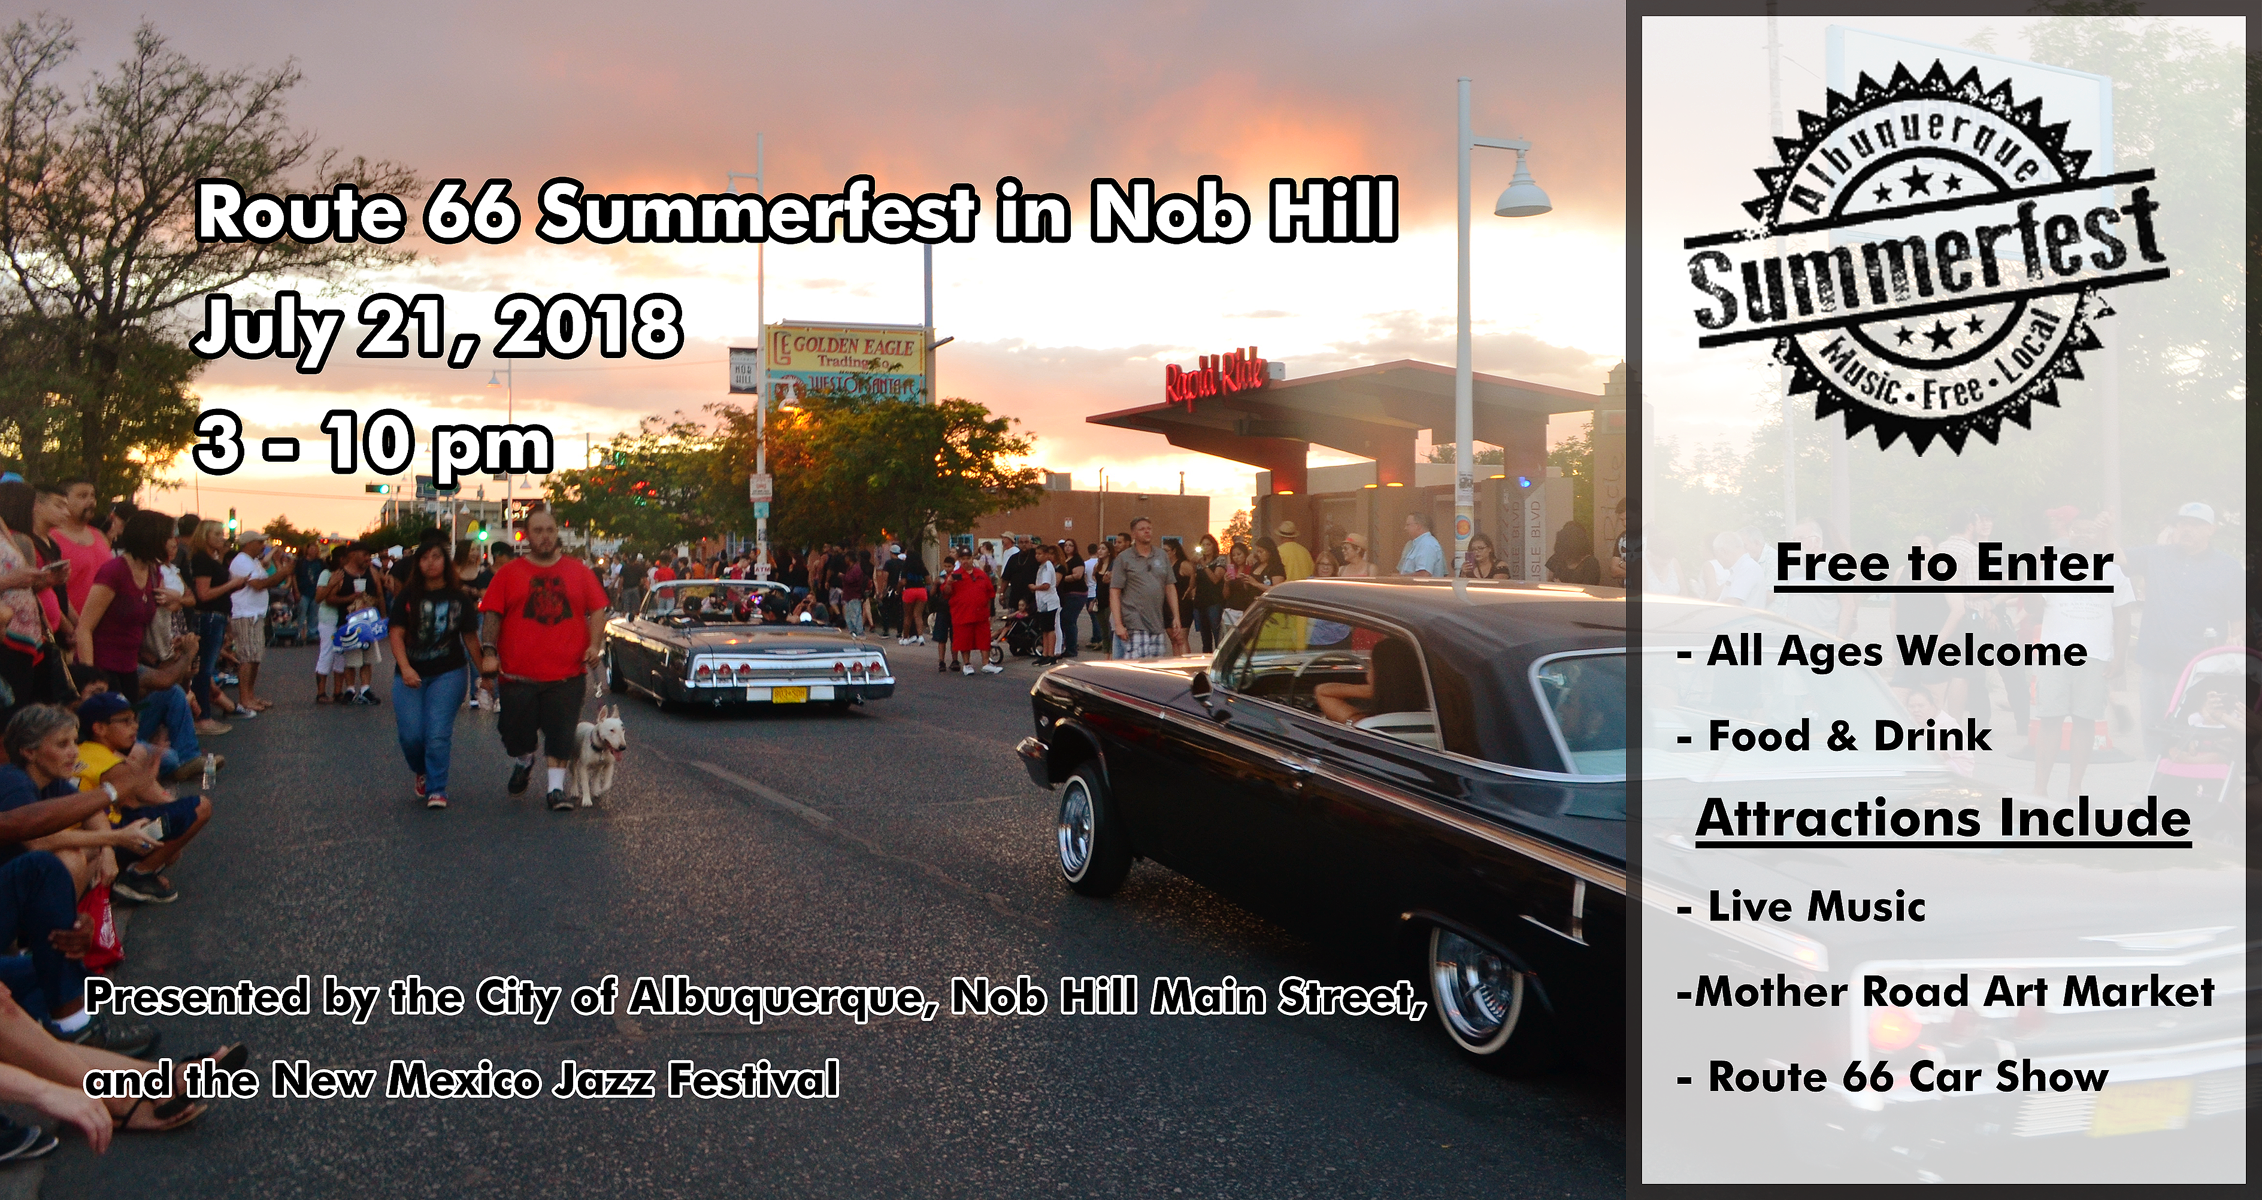 Summerfest On Route In Nob Hill Nob Hill Main Street - Market street car show